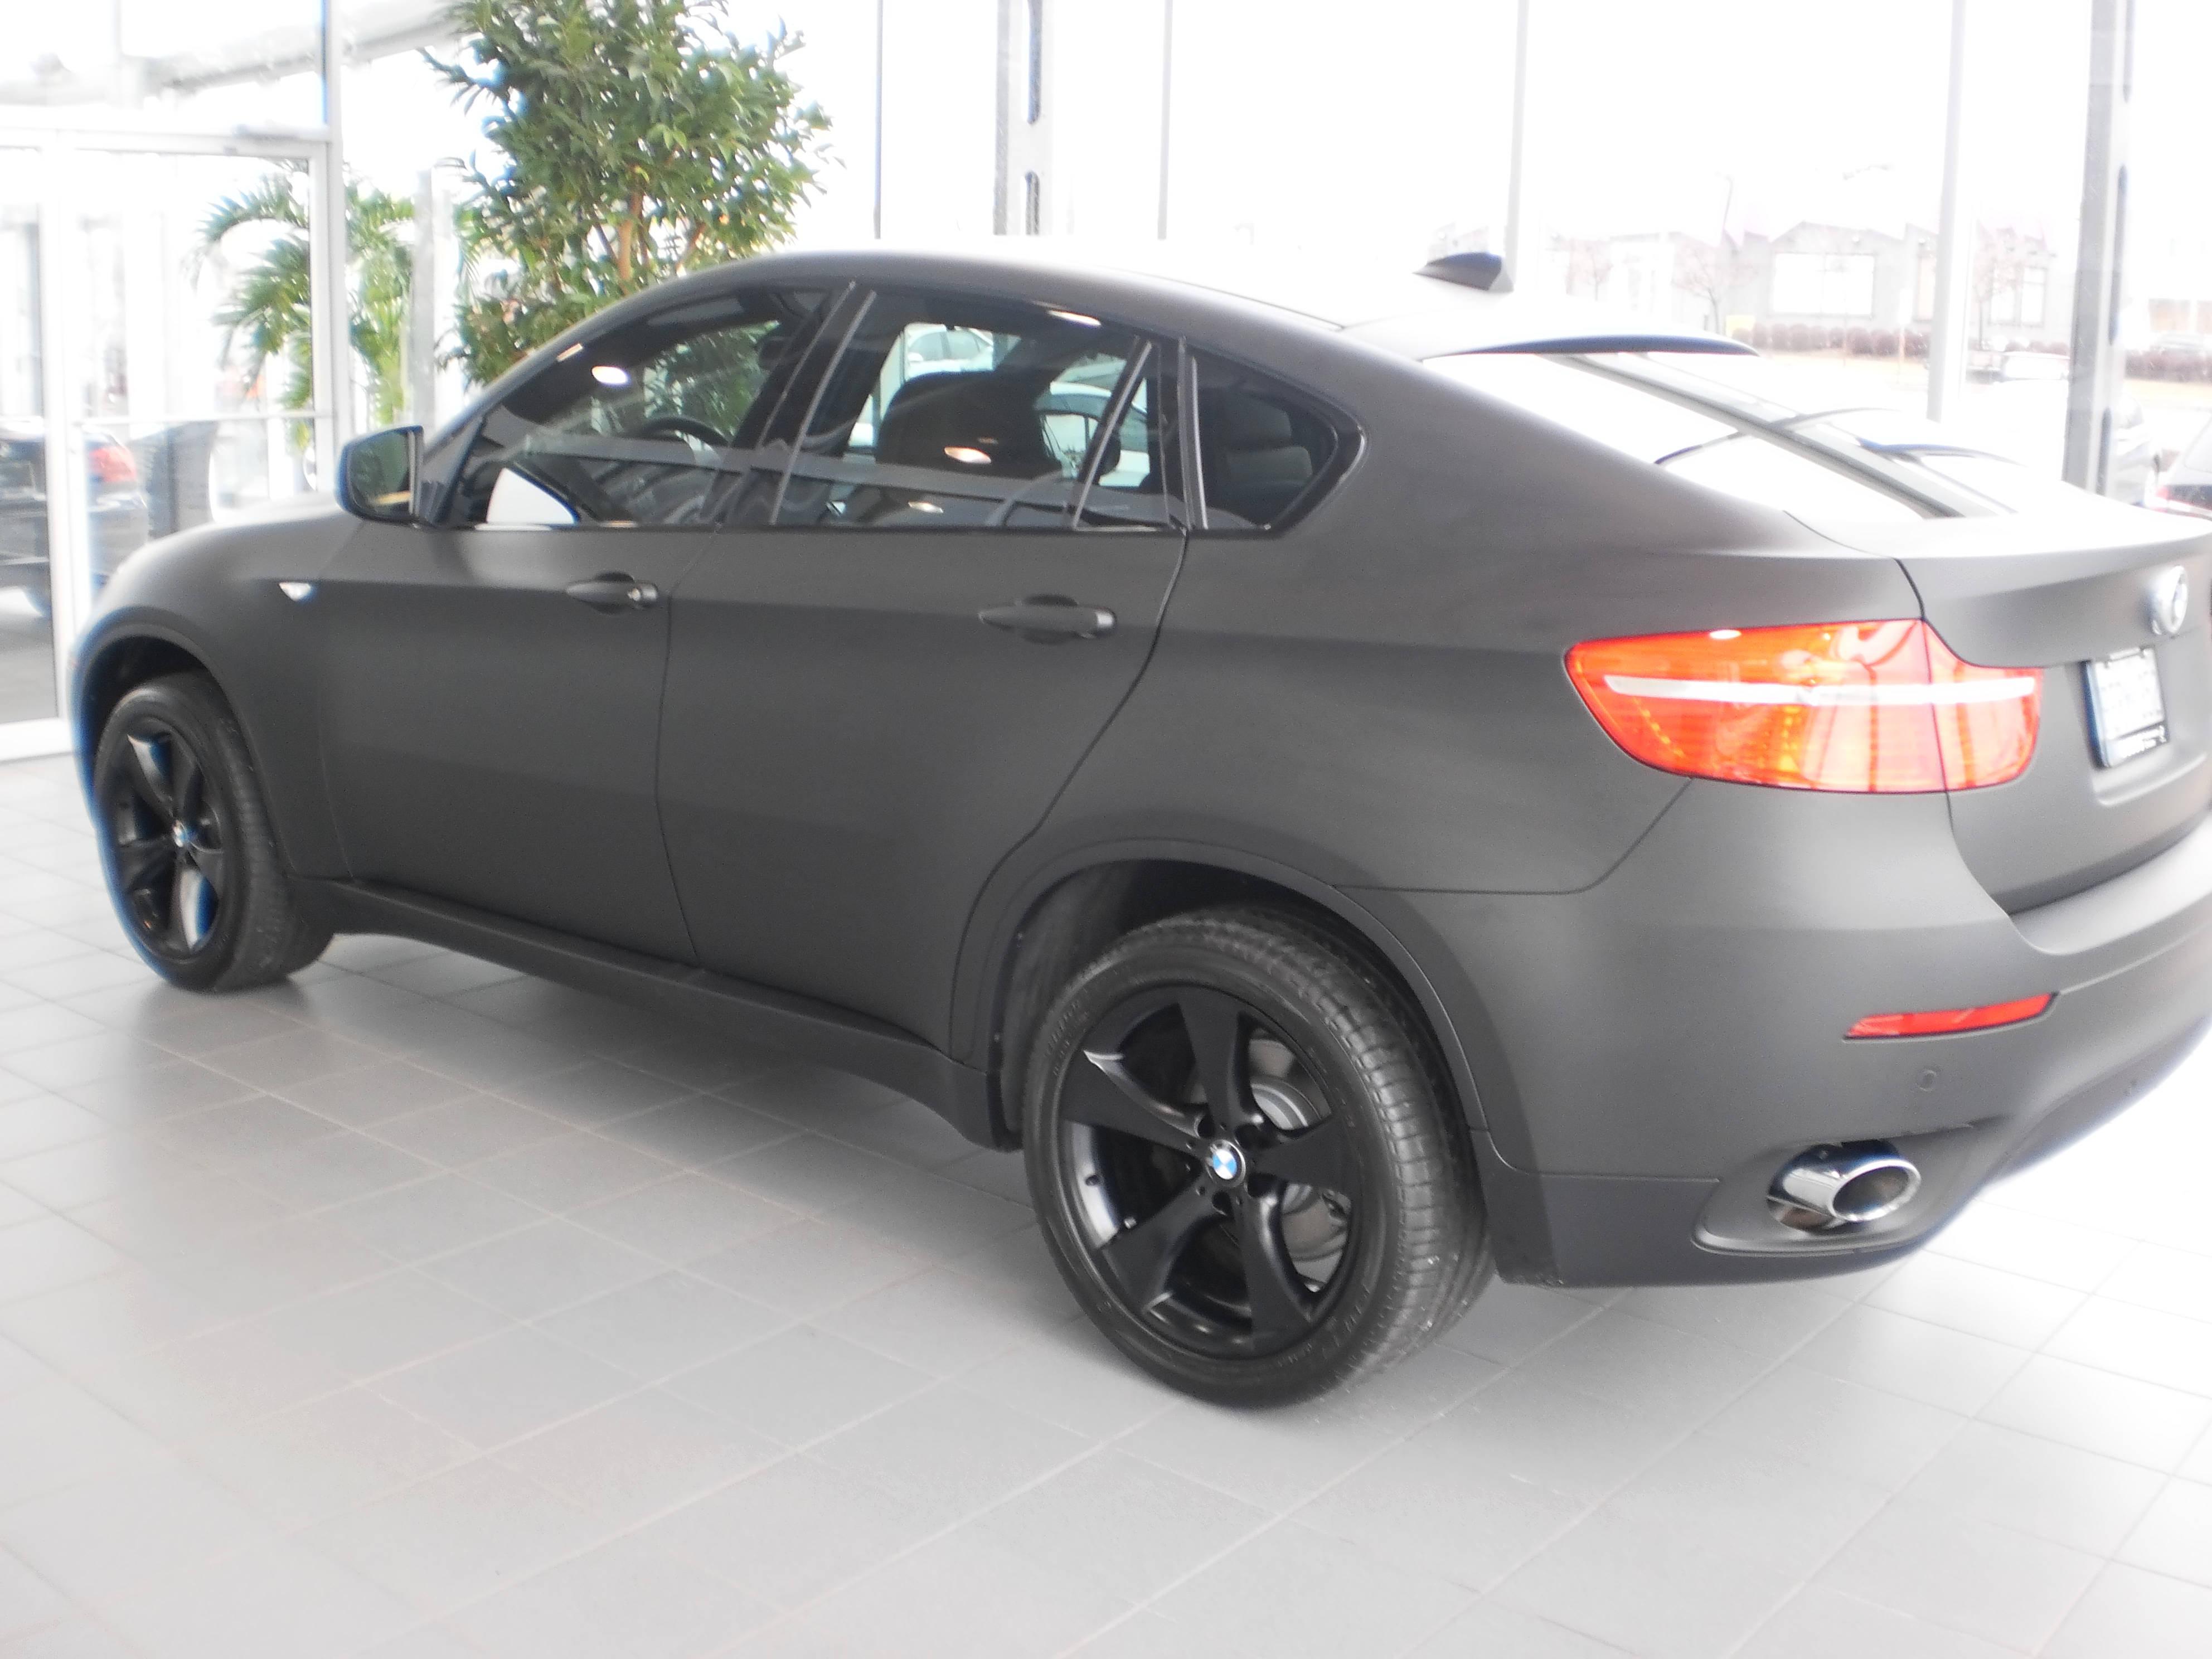 BMW X6 wrapped in 3M 1080 matte black by vWrapz at Budd's BMW in Hamilton ON